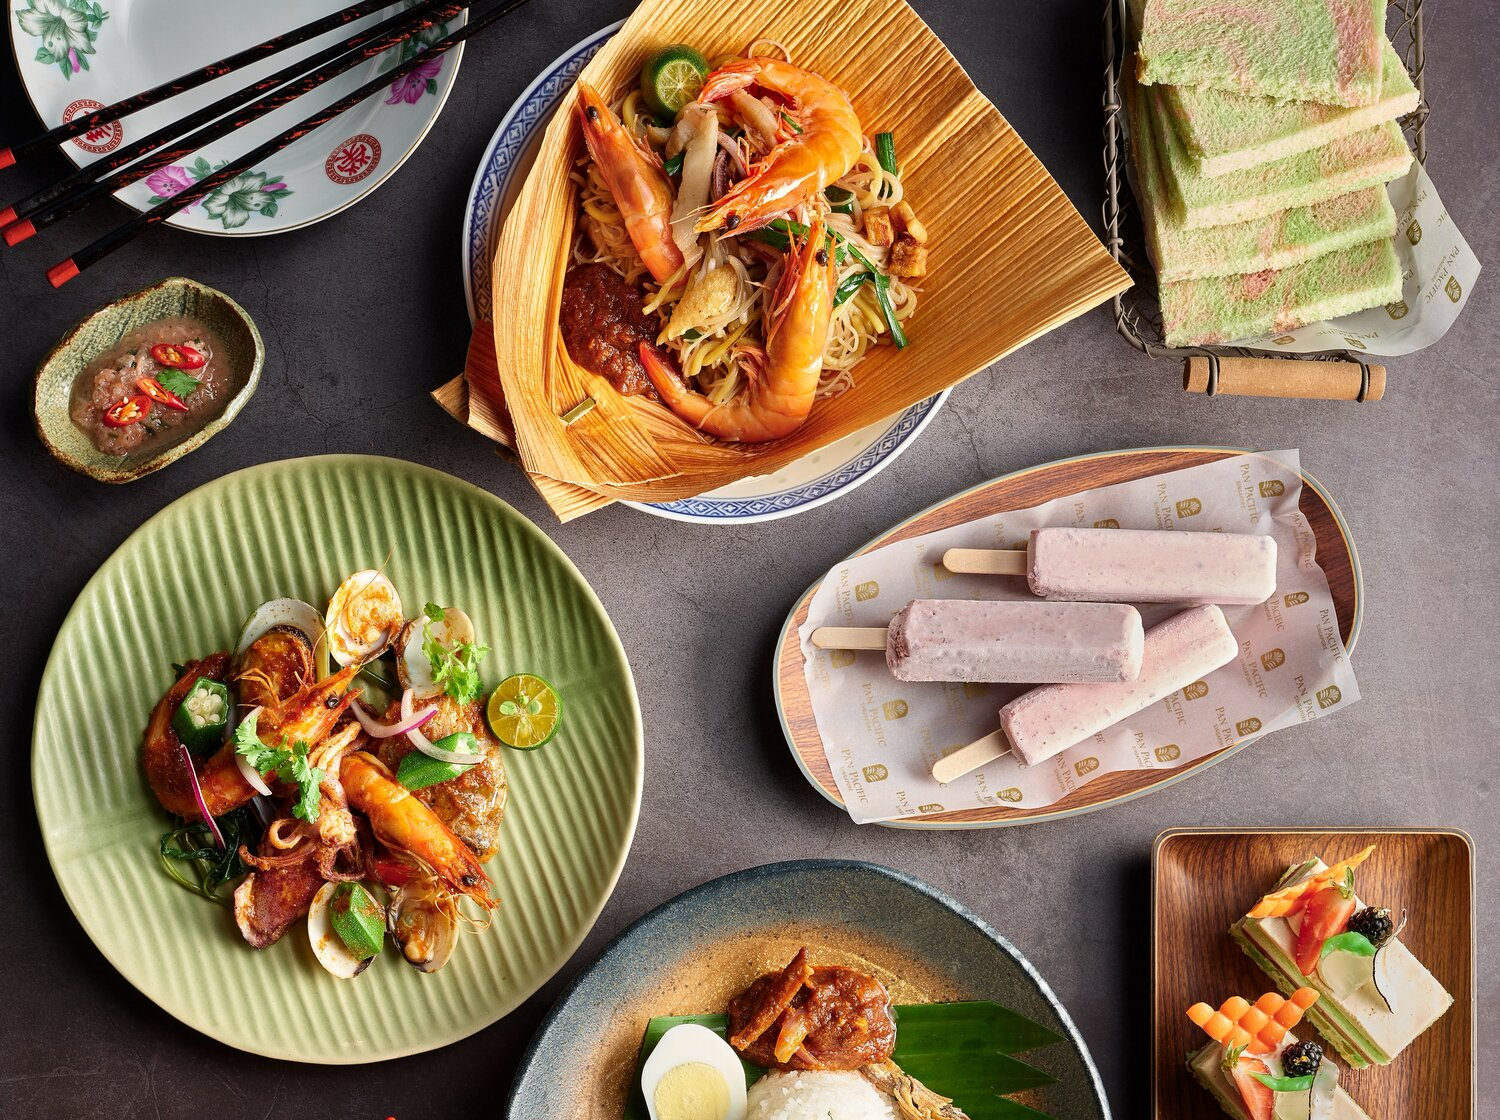 A Celebration of Singapore Flavours Dinner Buffet at Edge (Pan Pacific Singapore) – 18 March to 30 April 2020